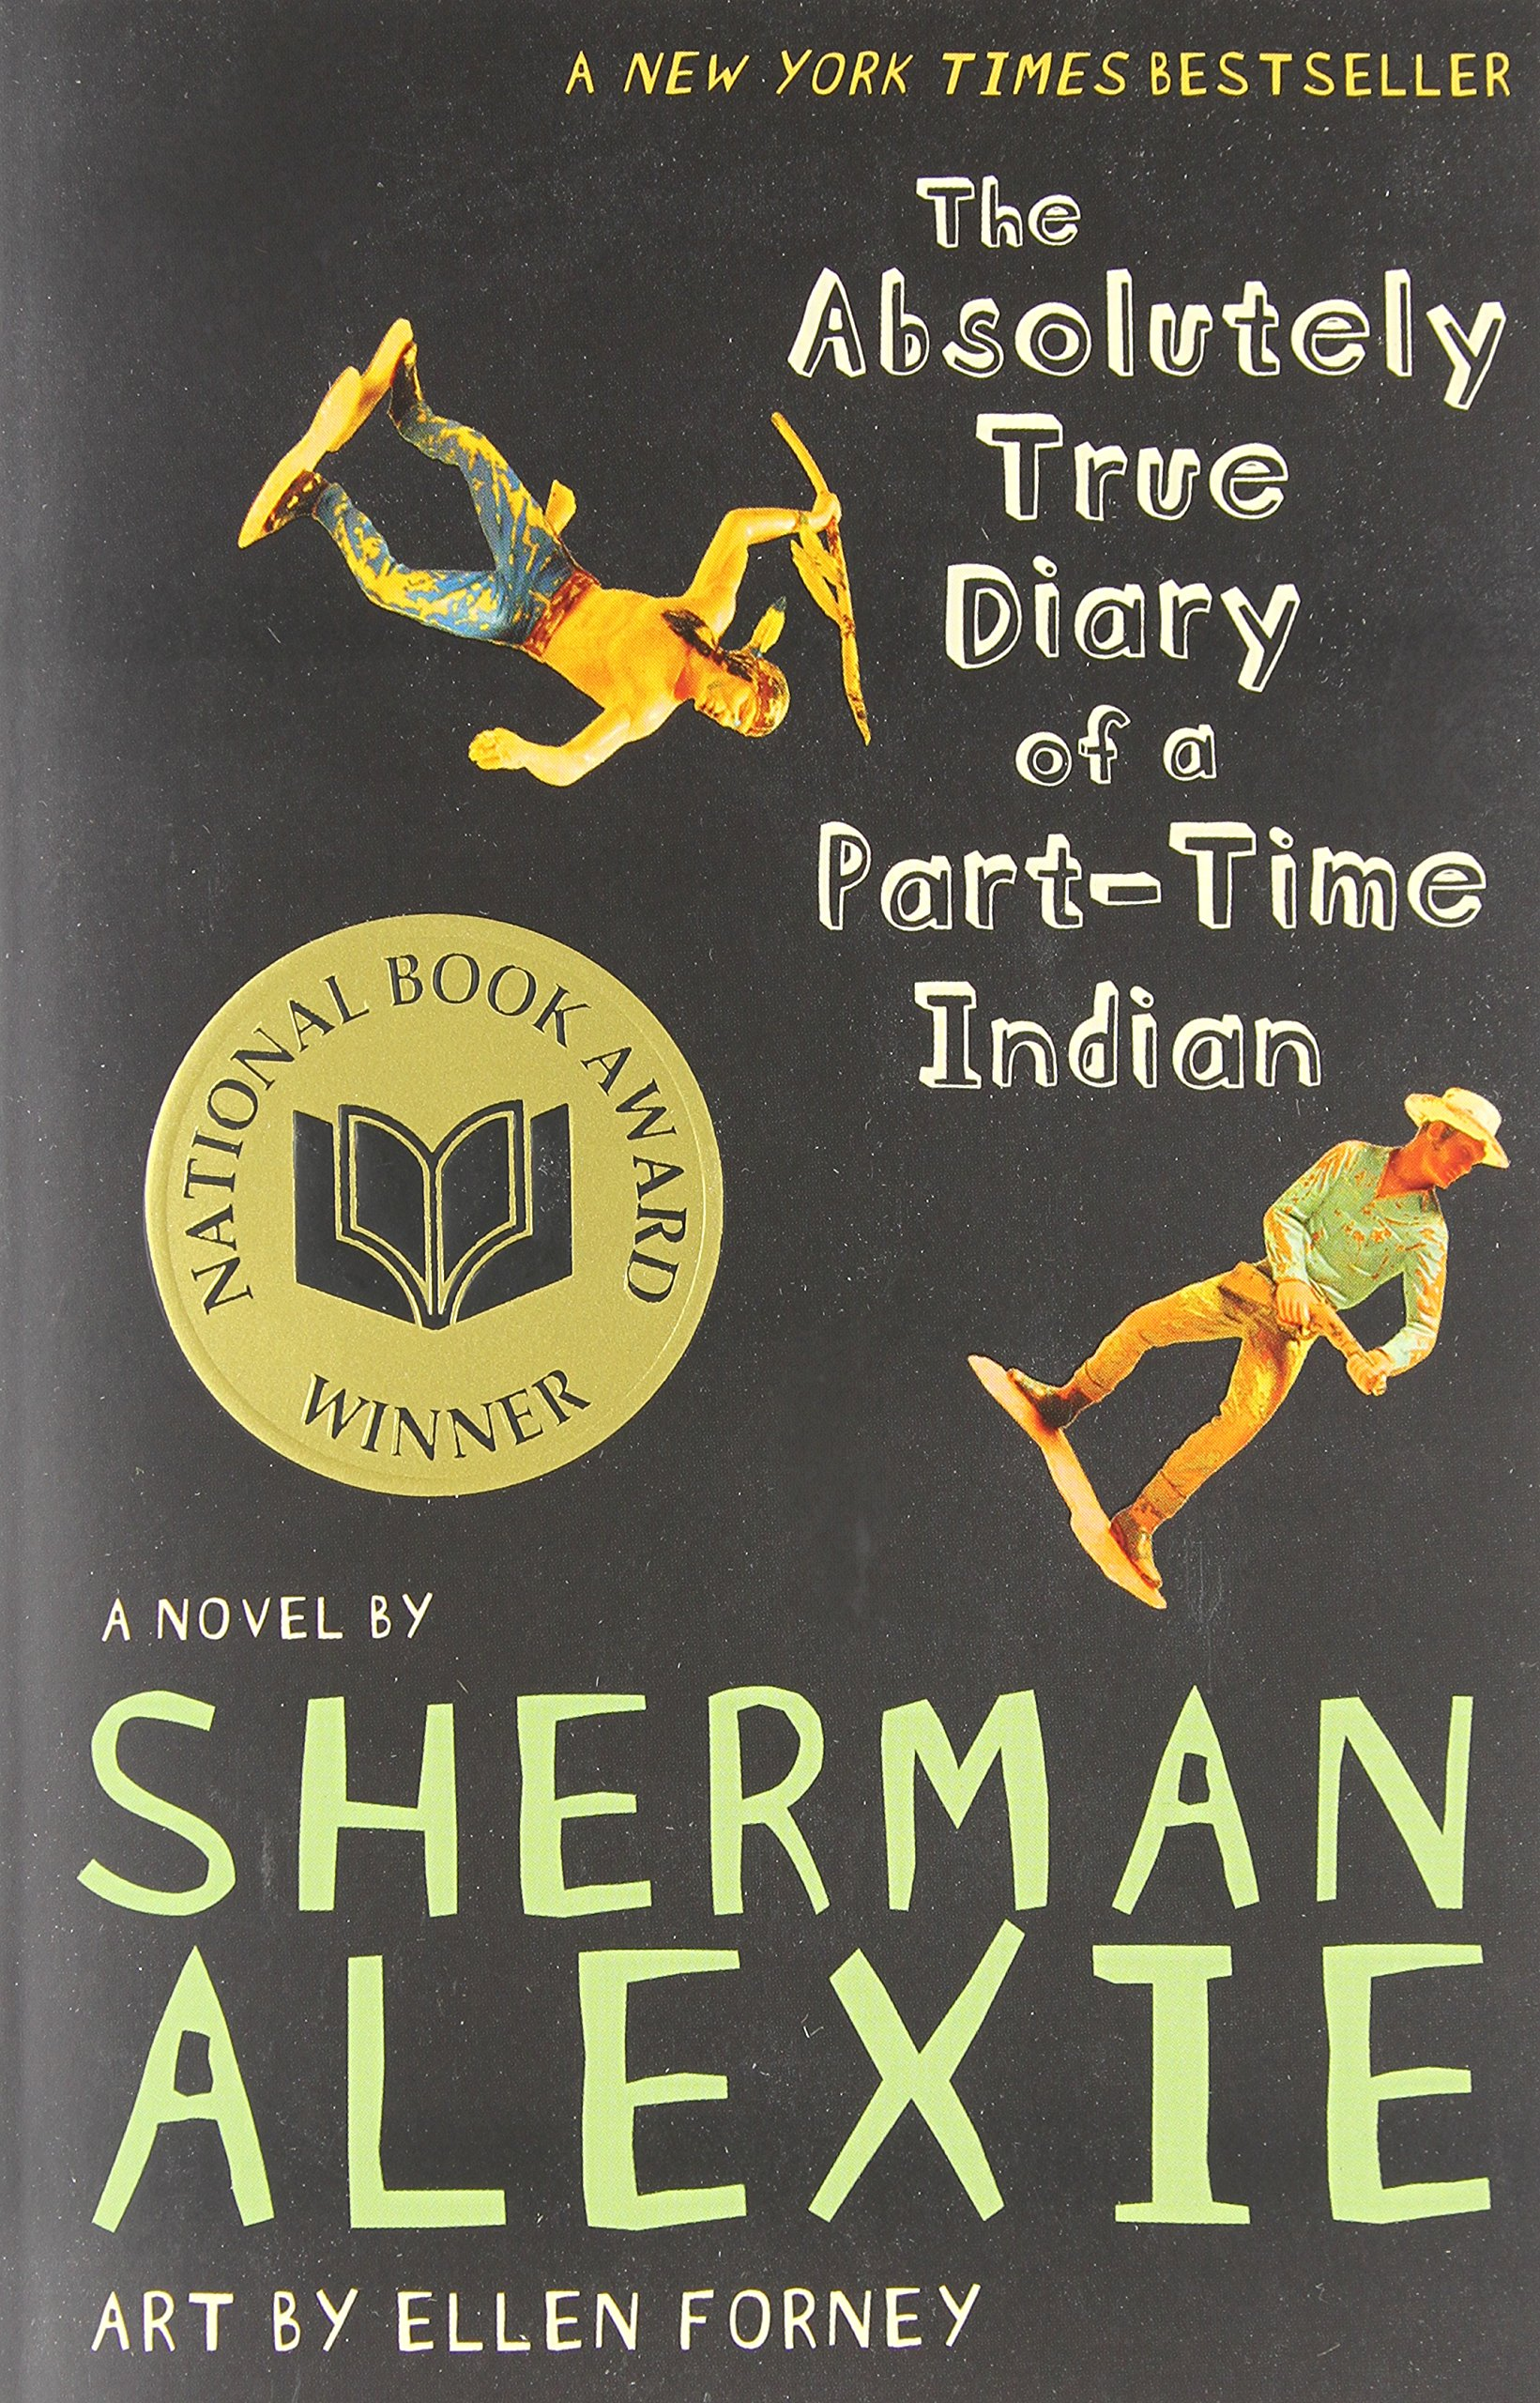 Absolutlely True Diary of a Part-Time Indian: Amazon.es: Sherman Alexie: Libros en idiomas extranjeros